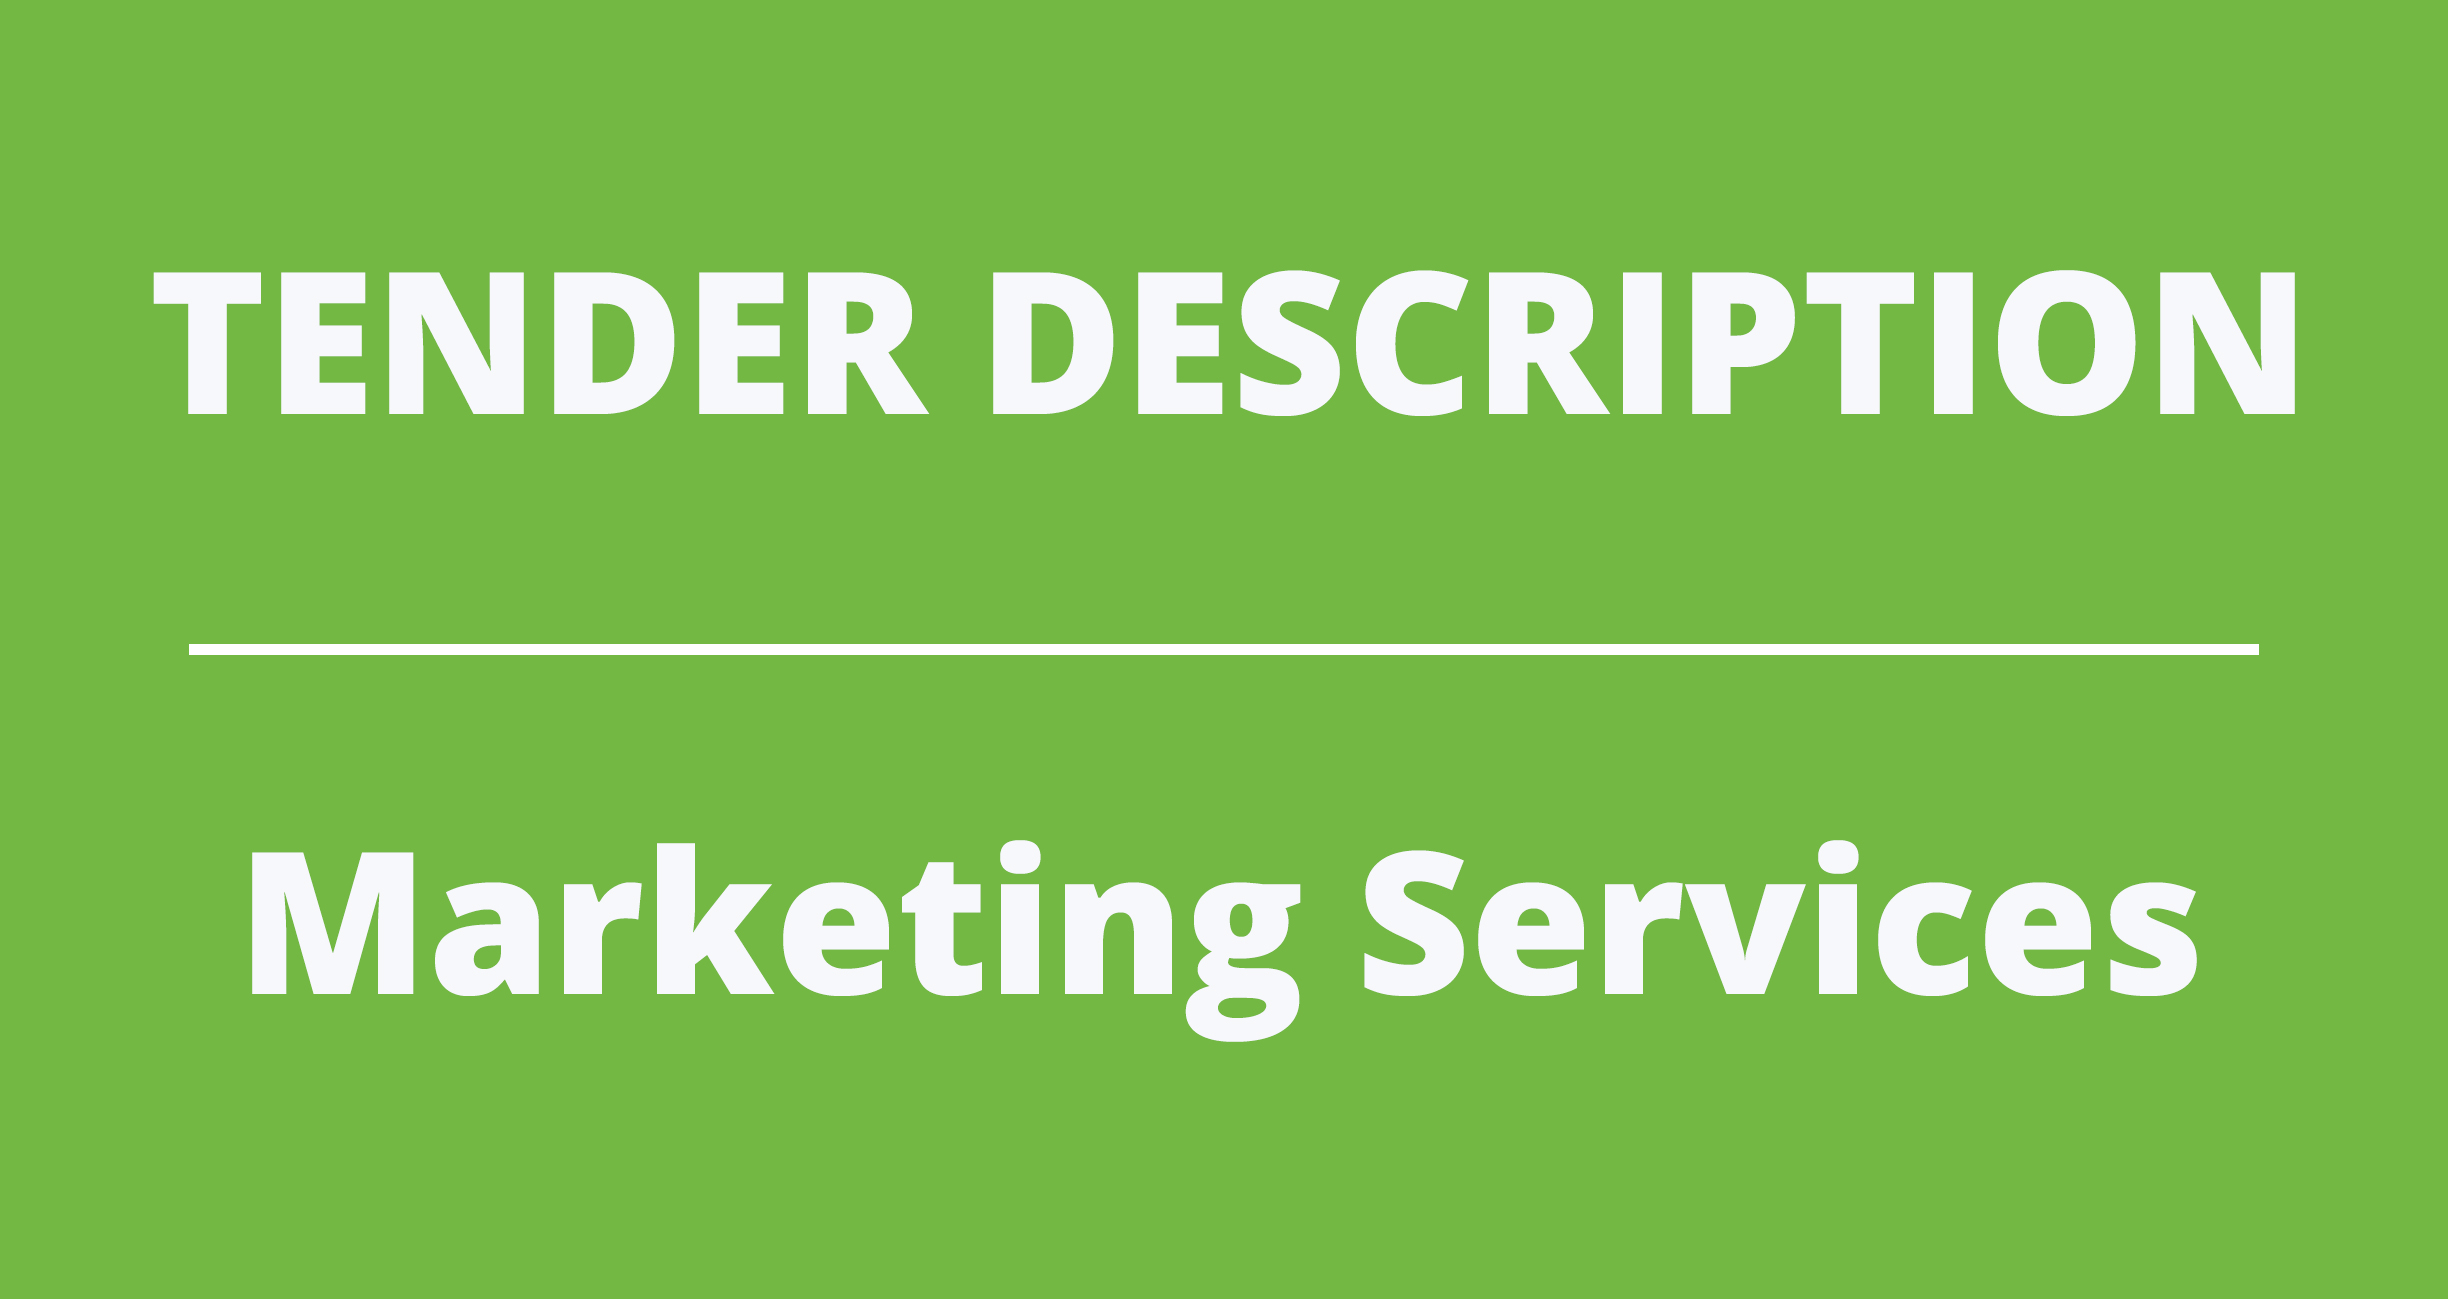 REQUEST FOR PROPOSAL – Marketing Services